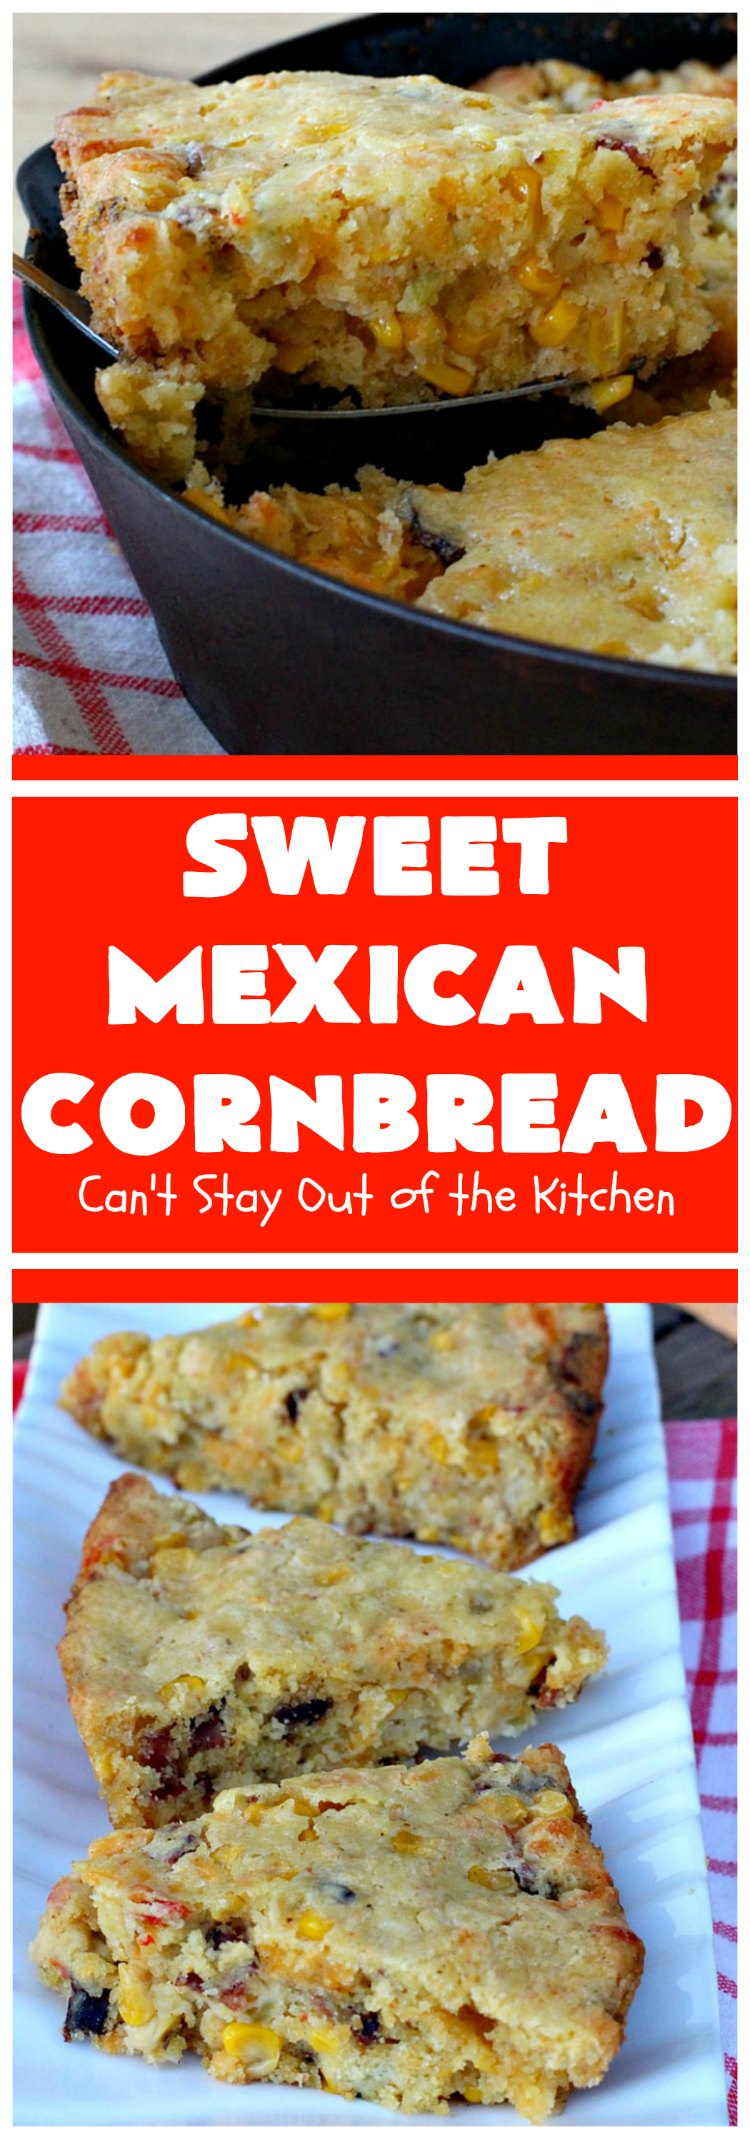 Sweet Mexican Cornbread | Can't Stay Out of the Kitchen